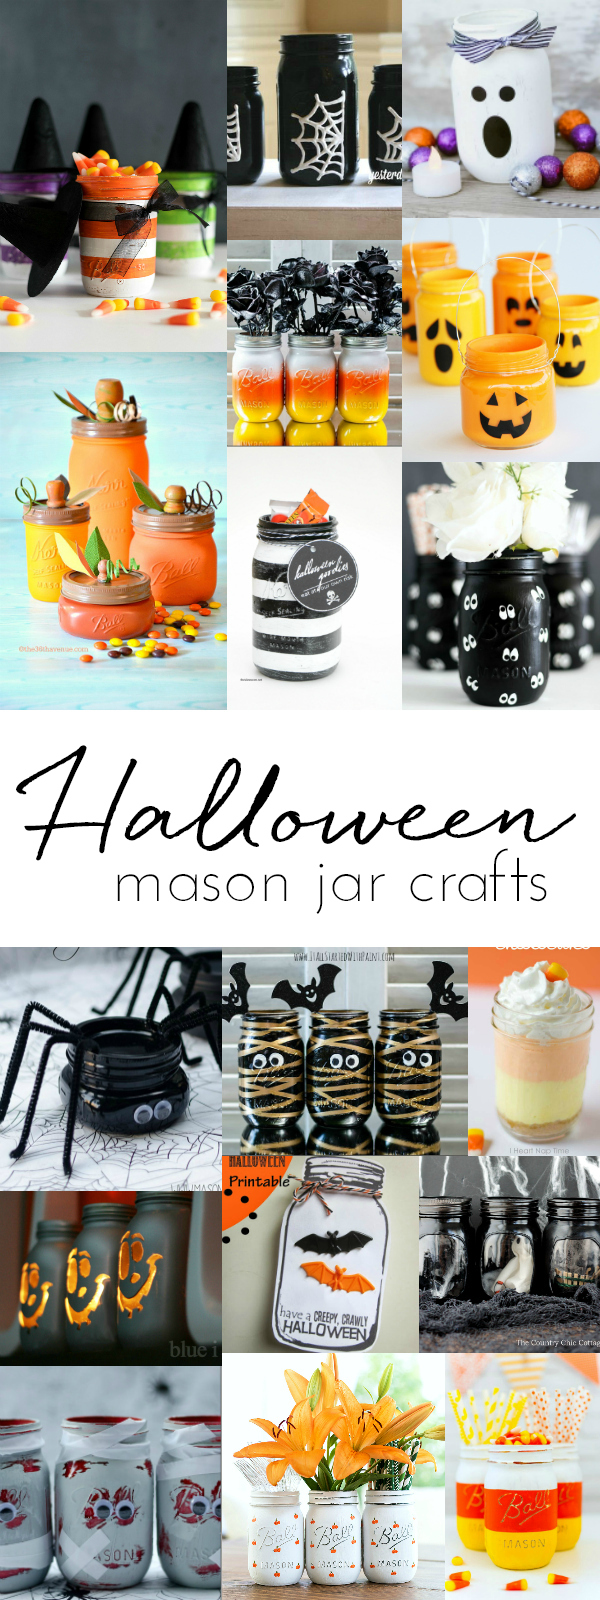 Halloween-Crafts-Mason-Jars-Kids-Crafts-1